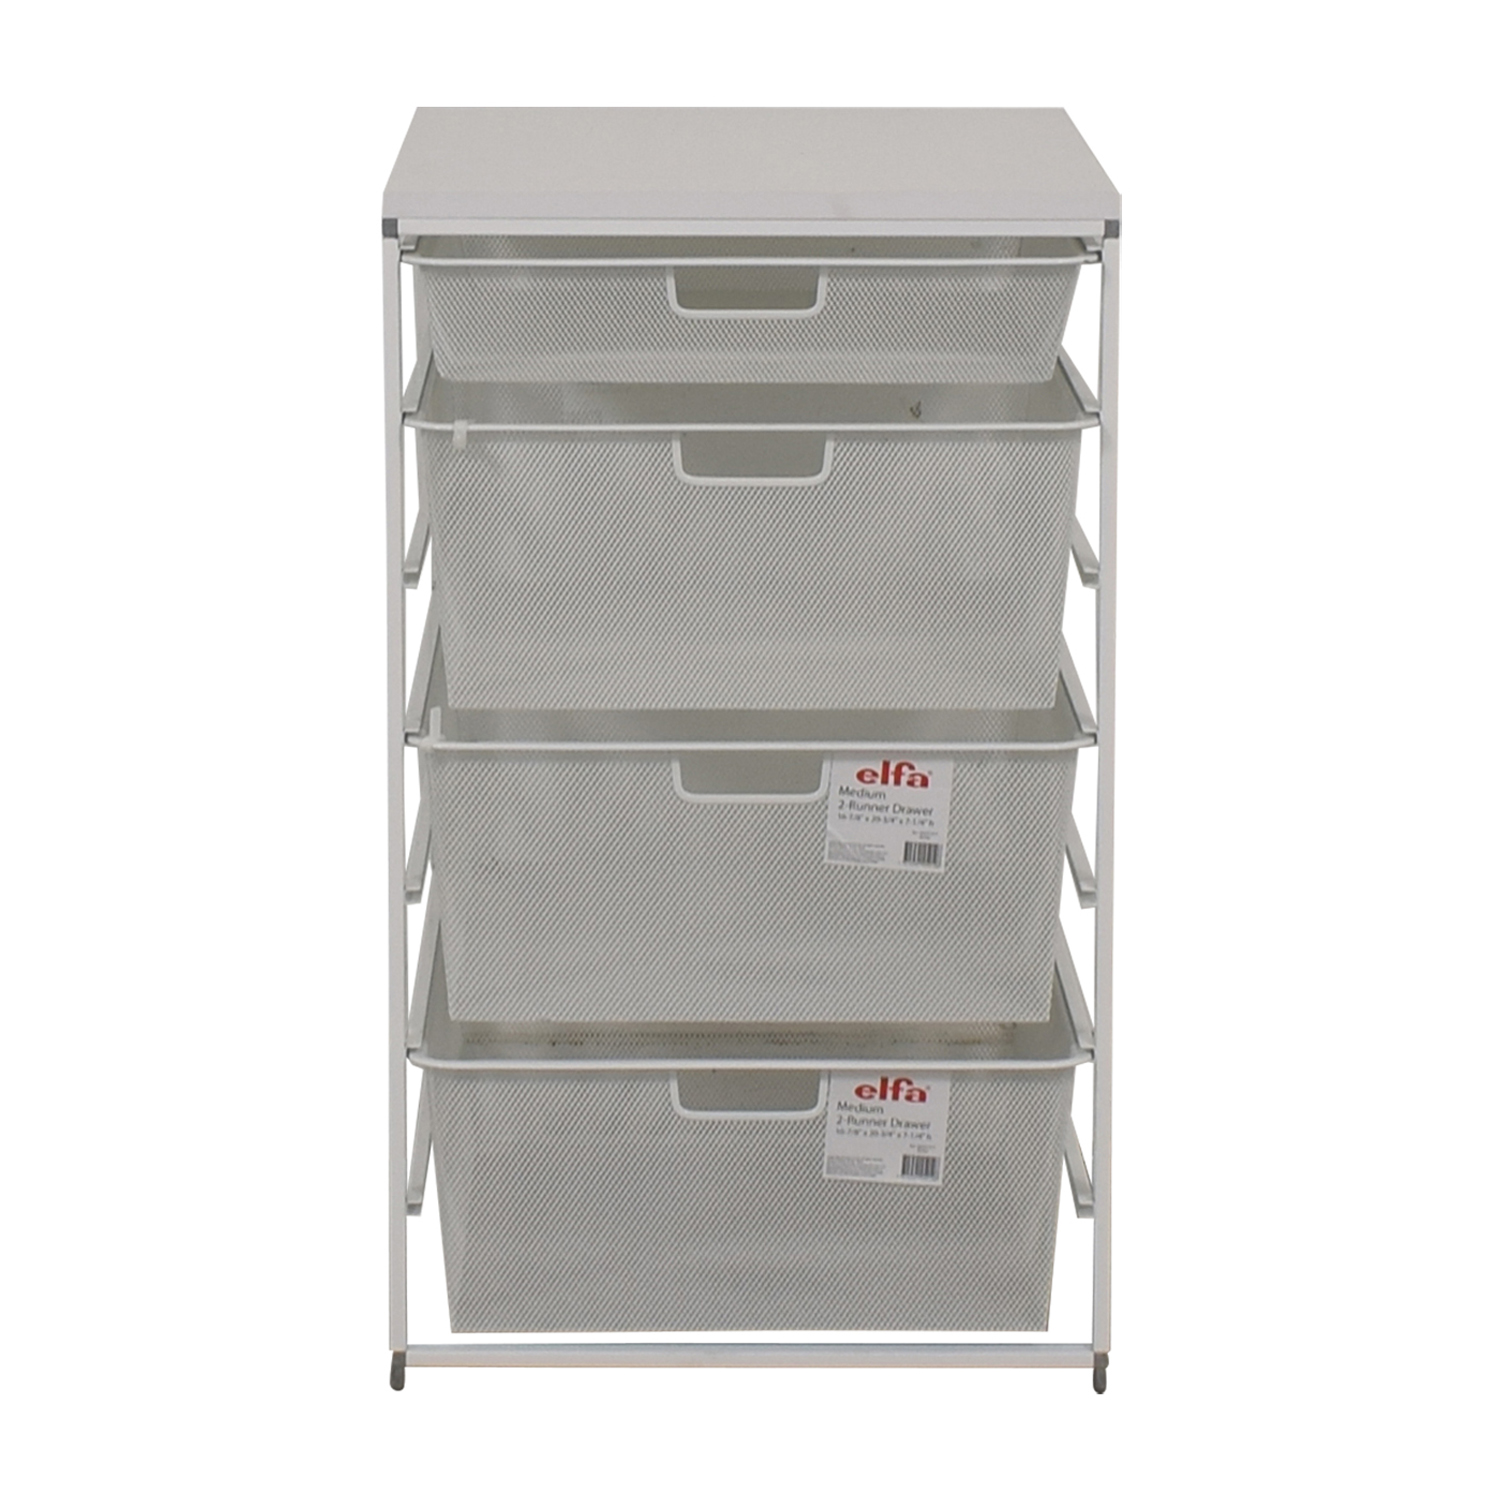 Elfa Elfa  White Mesh Closet Drawers second hand